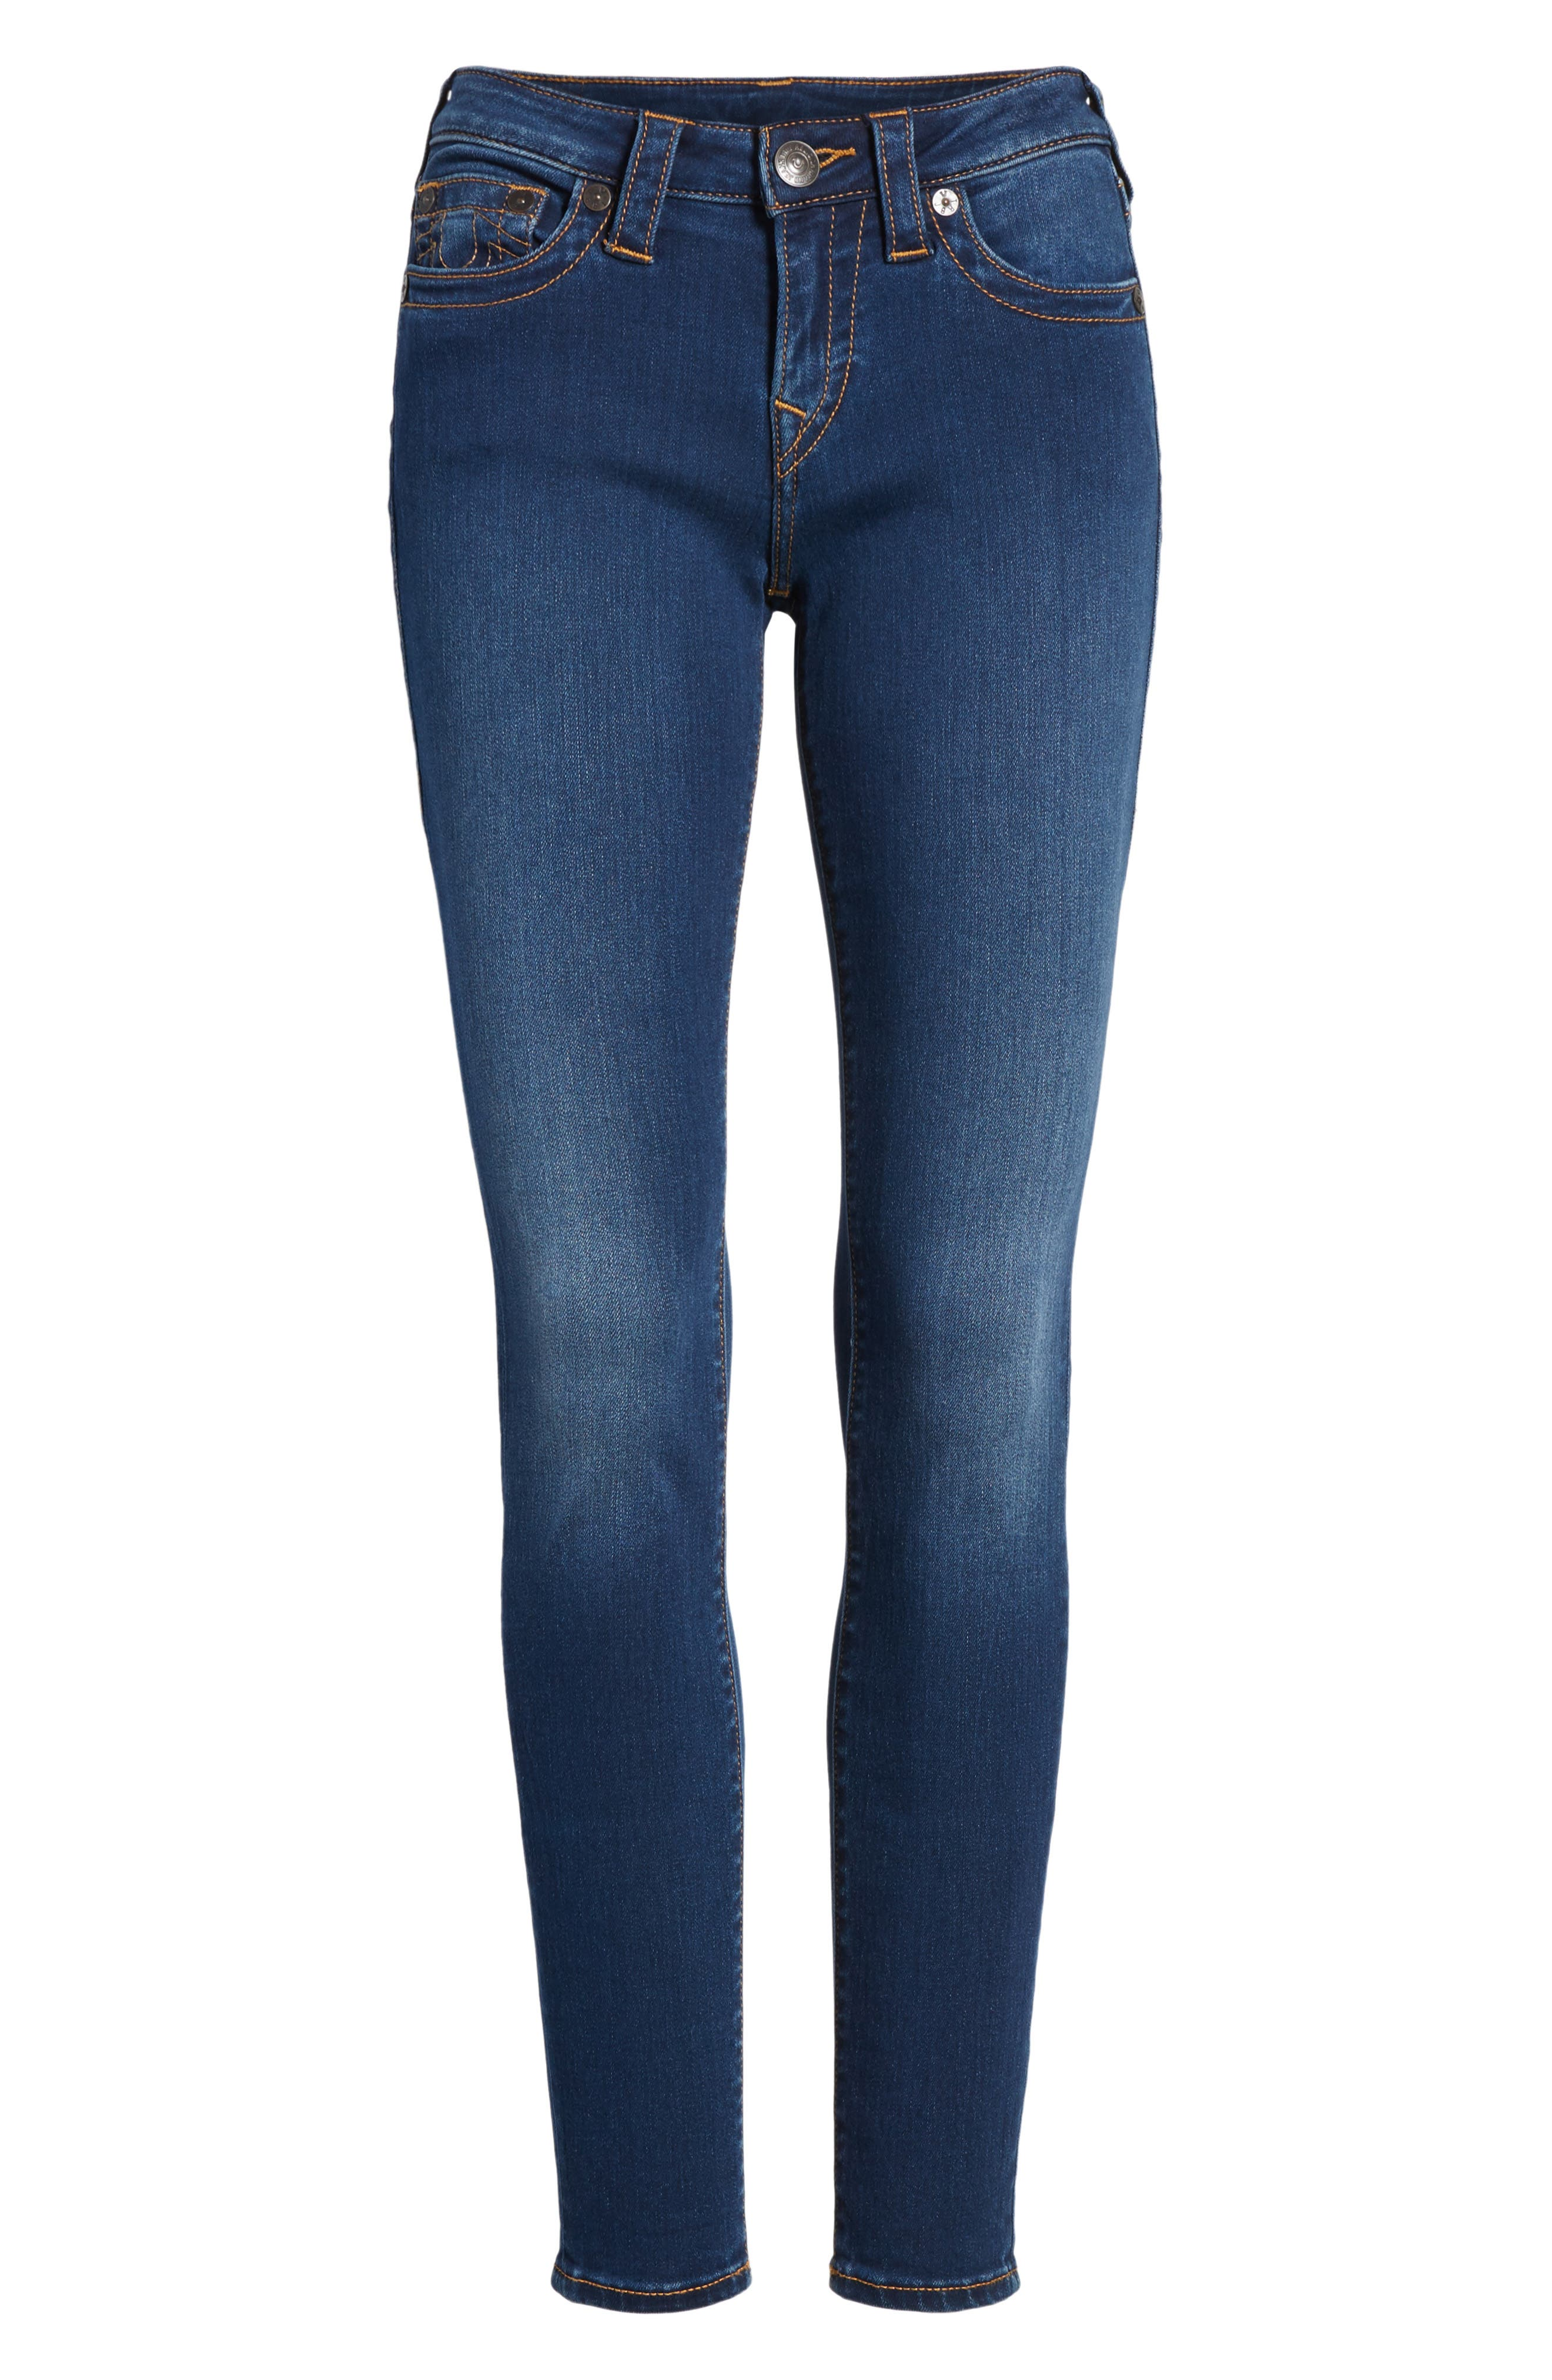 Halle Mid Rise Skinny Jeans,                             Alternate thumbnail 6, color,                             Lands End Indigo